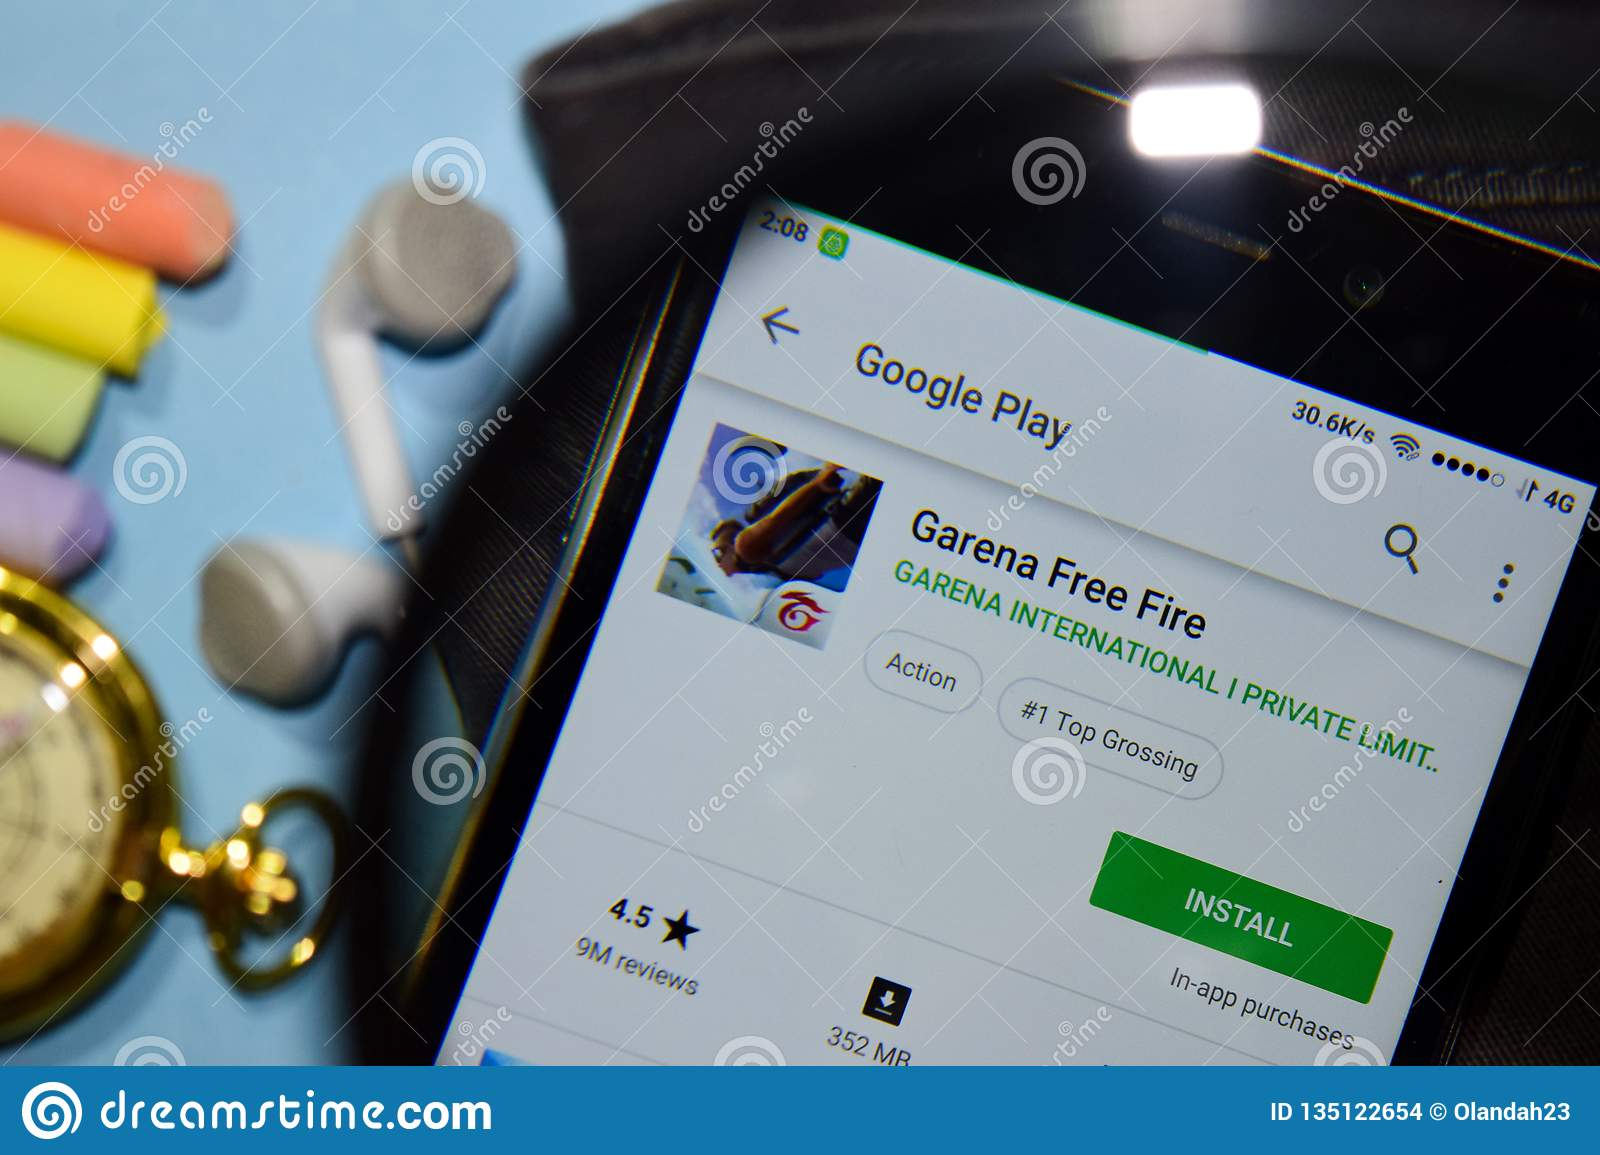 Garena Free Fire Dev App With Magnifying On Smartphone